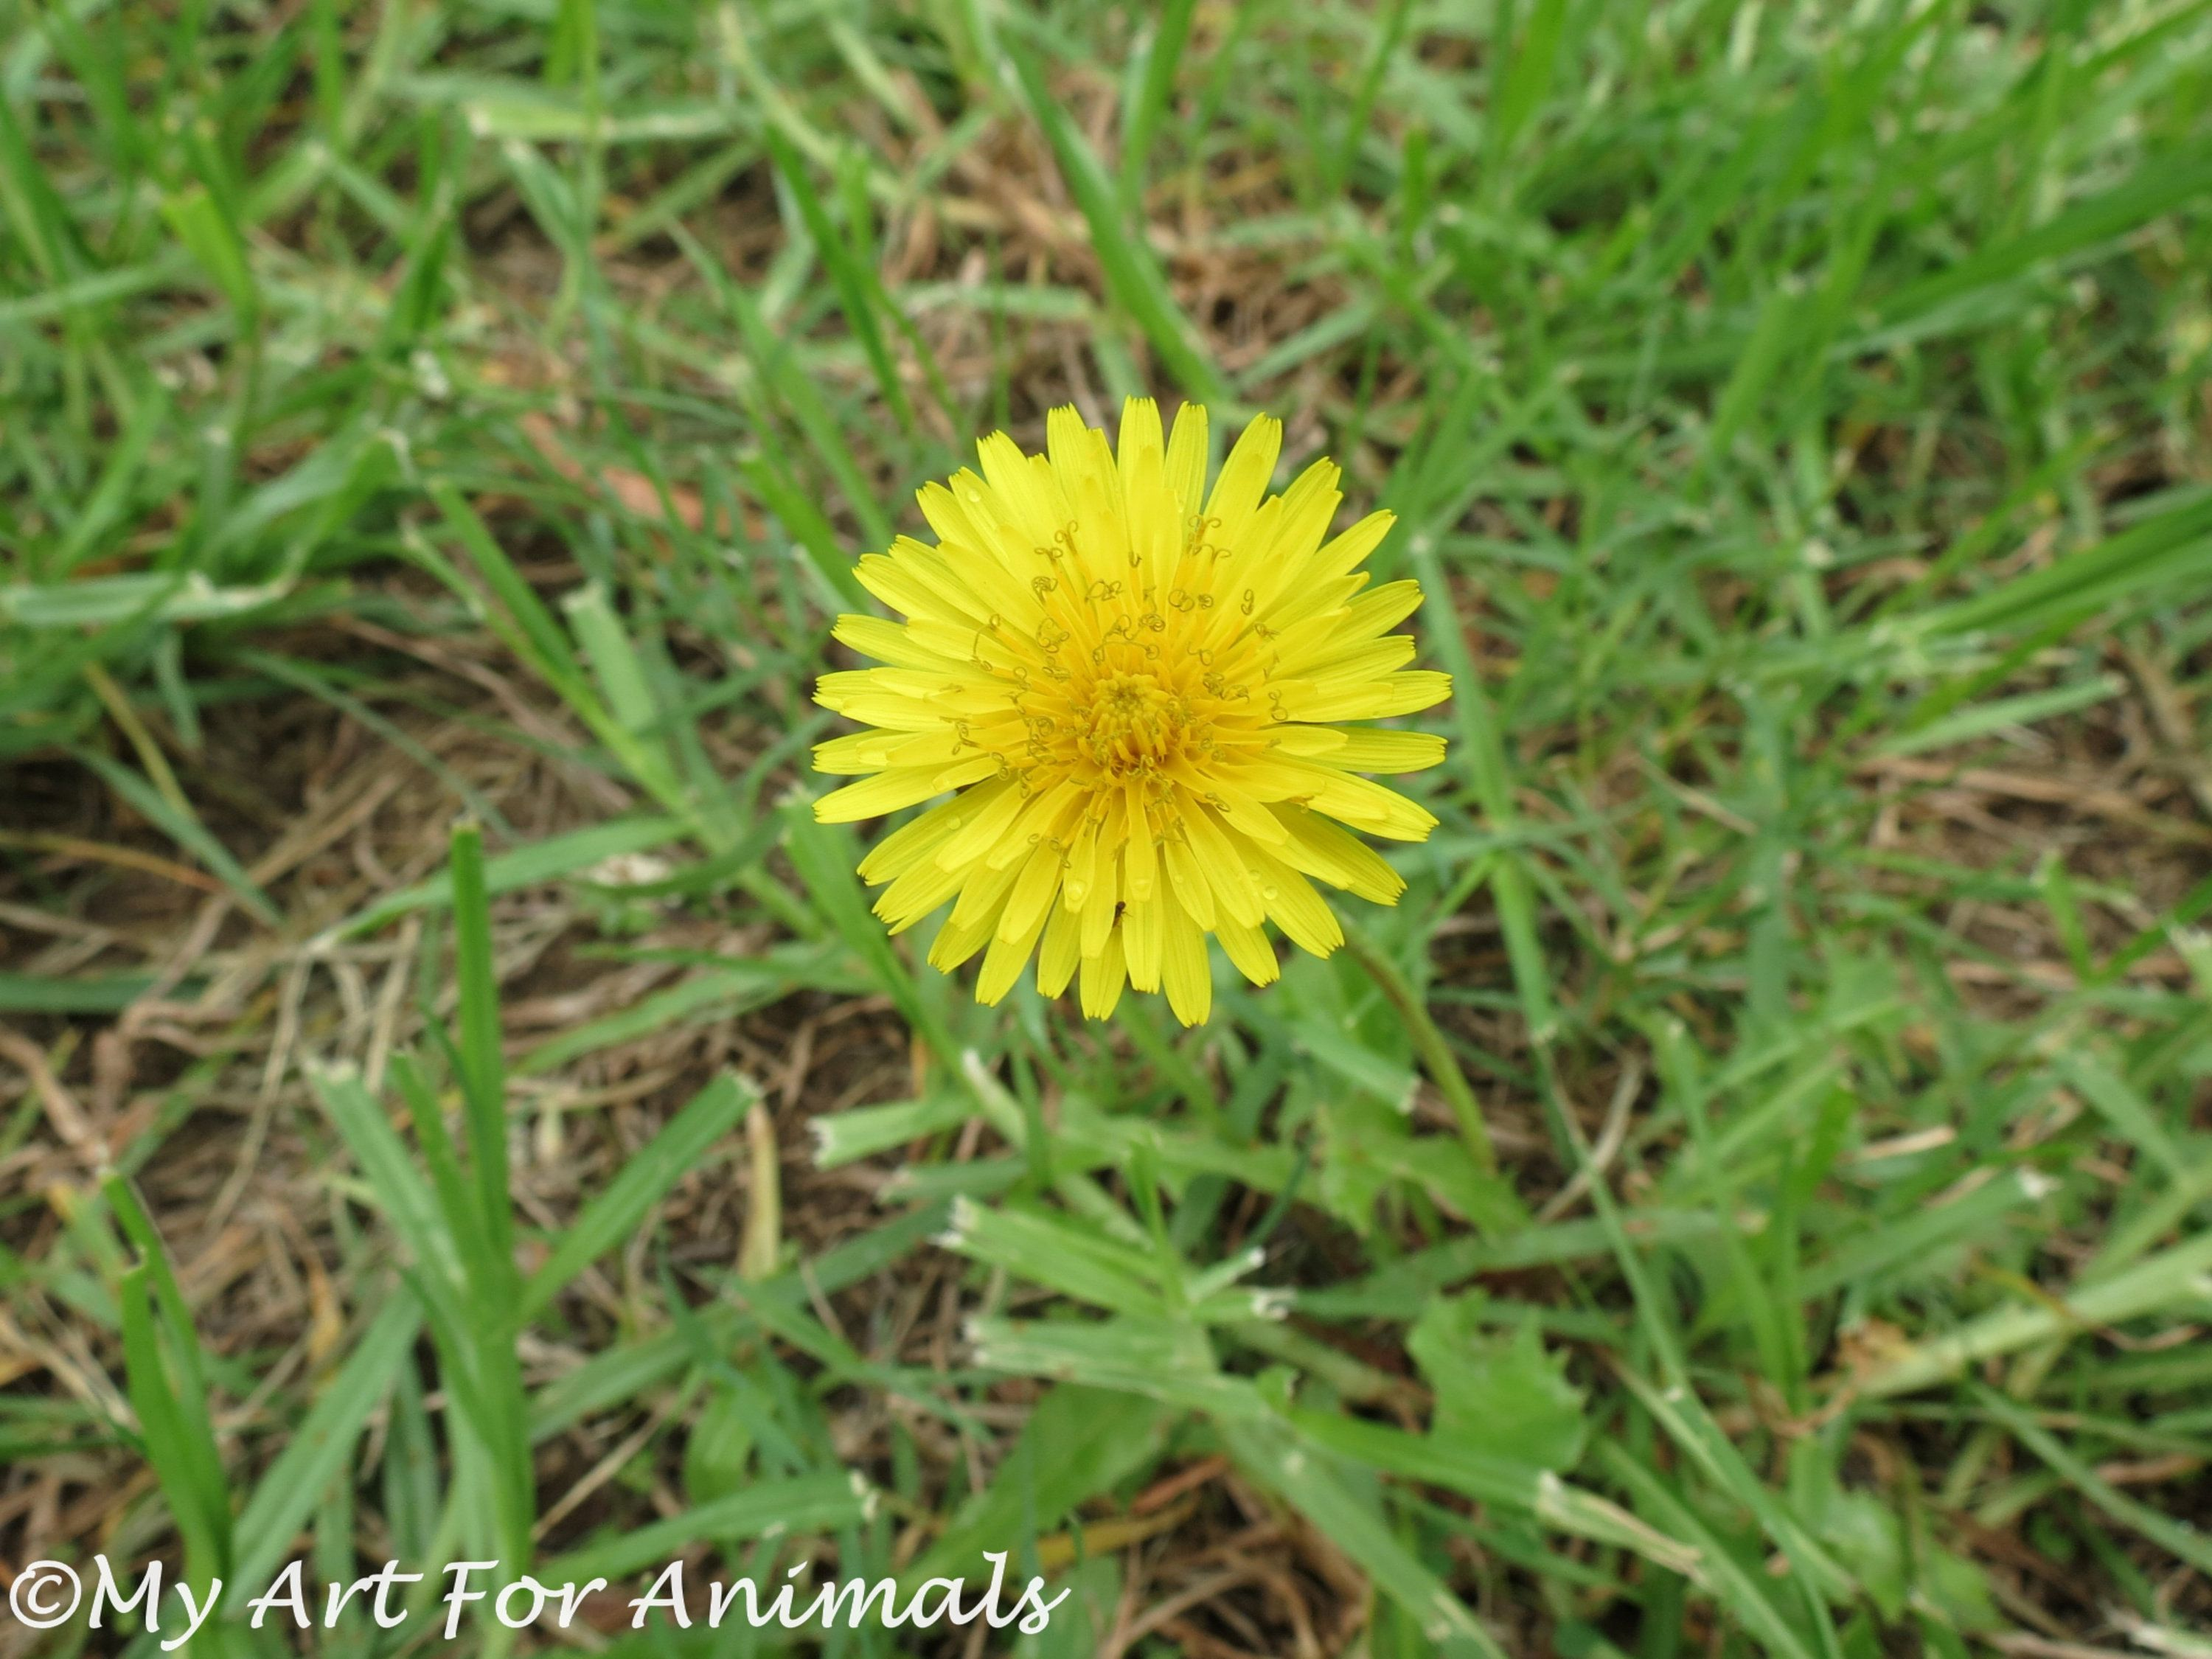 Dandelion Photo Rain Grass Wet The Bed Flower Weed Yellow